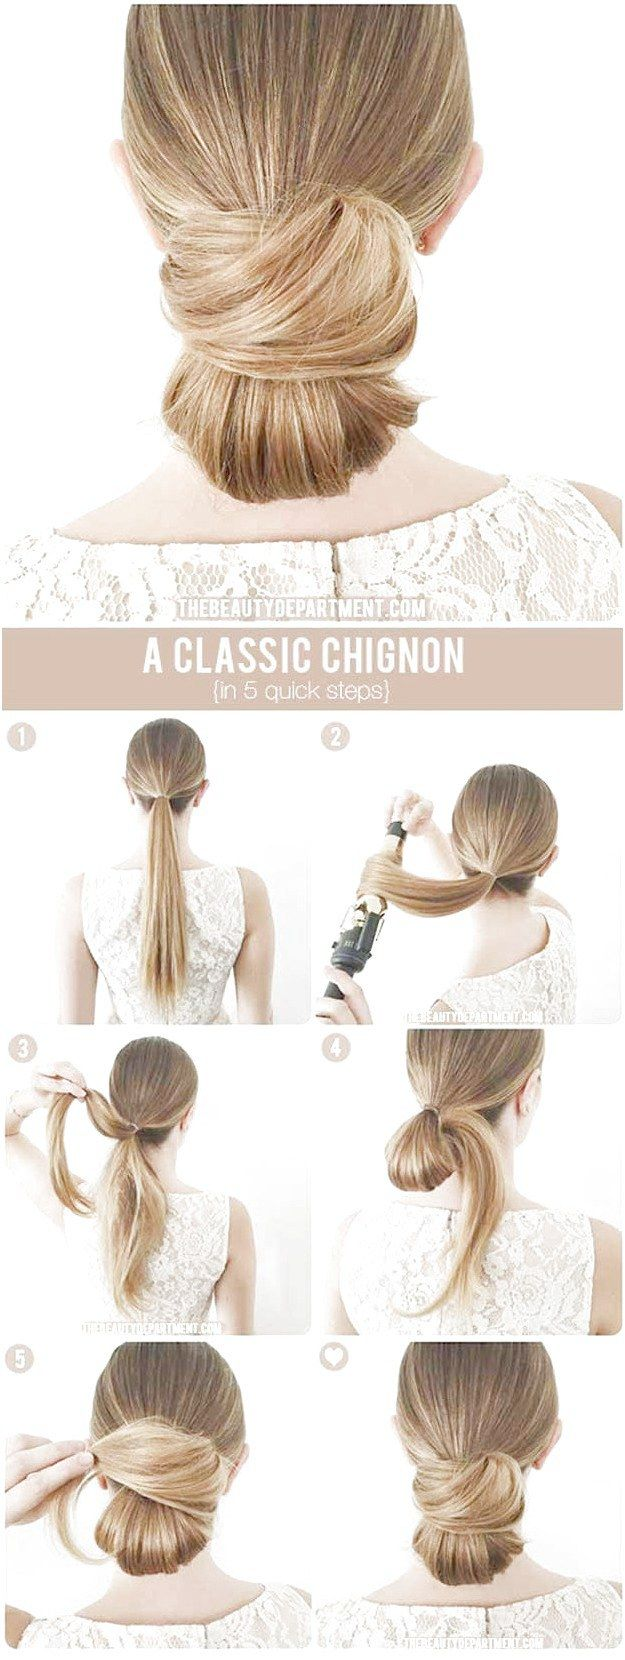 Wedding Hairstyles for Long Hair - Easy Pony Tail Updo - Wedding Hairstyles for Long Hair Bridesmaid - Looking For The Perfect Updo Or Half Up For You...